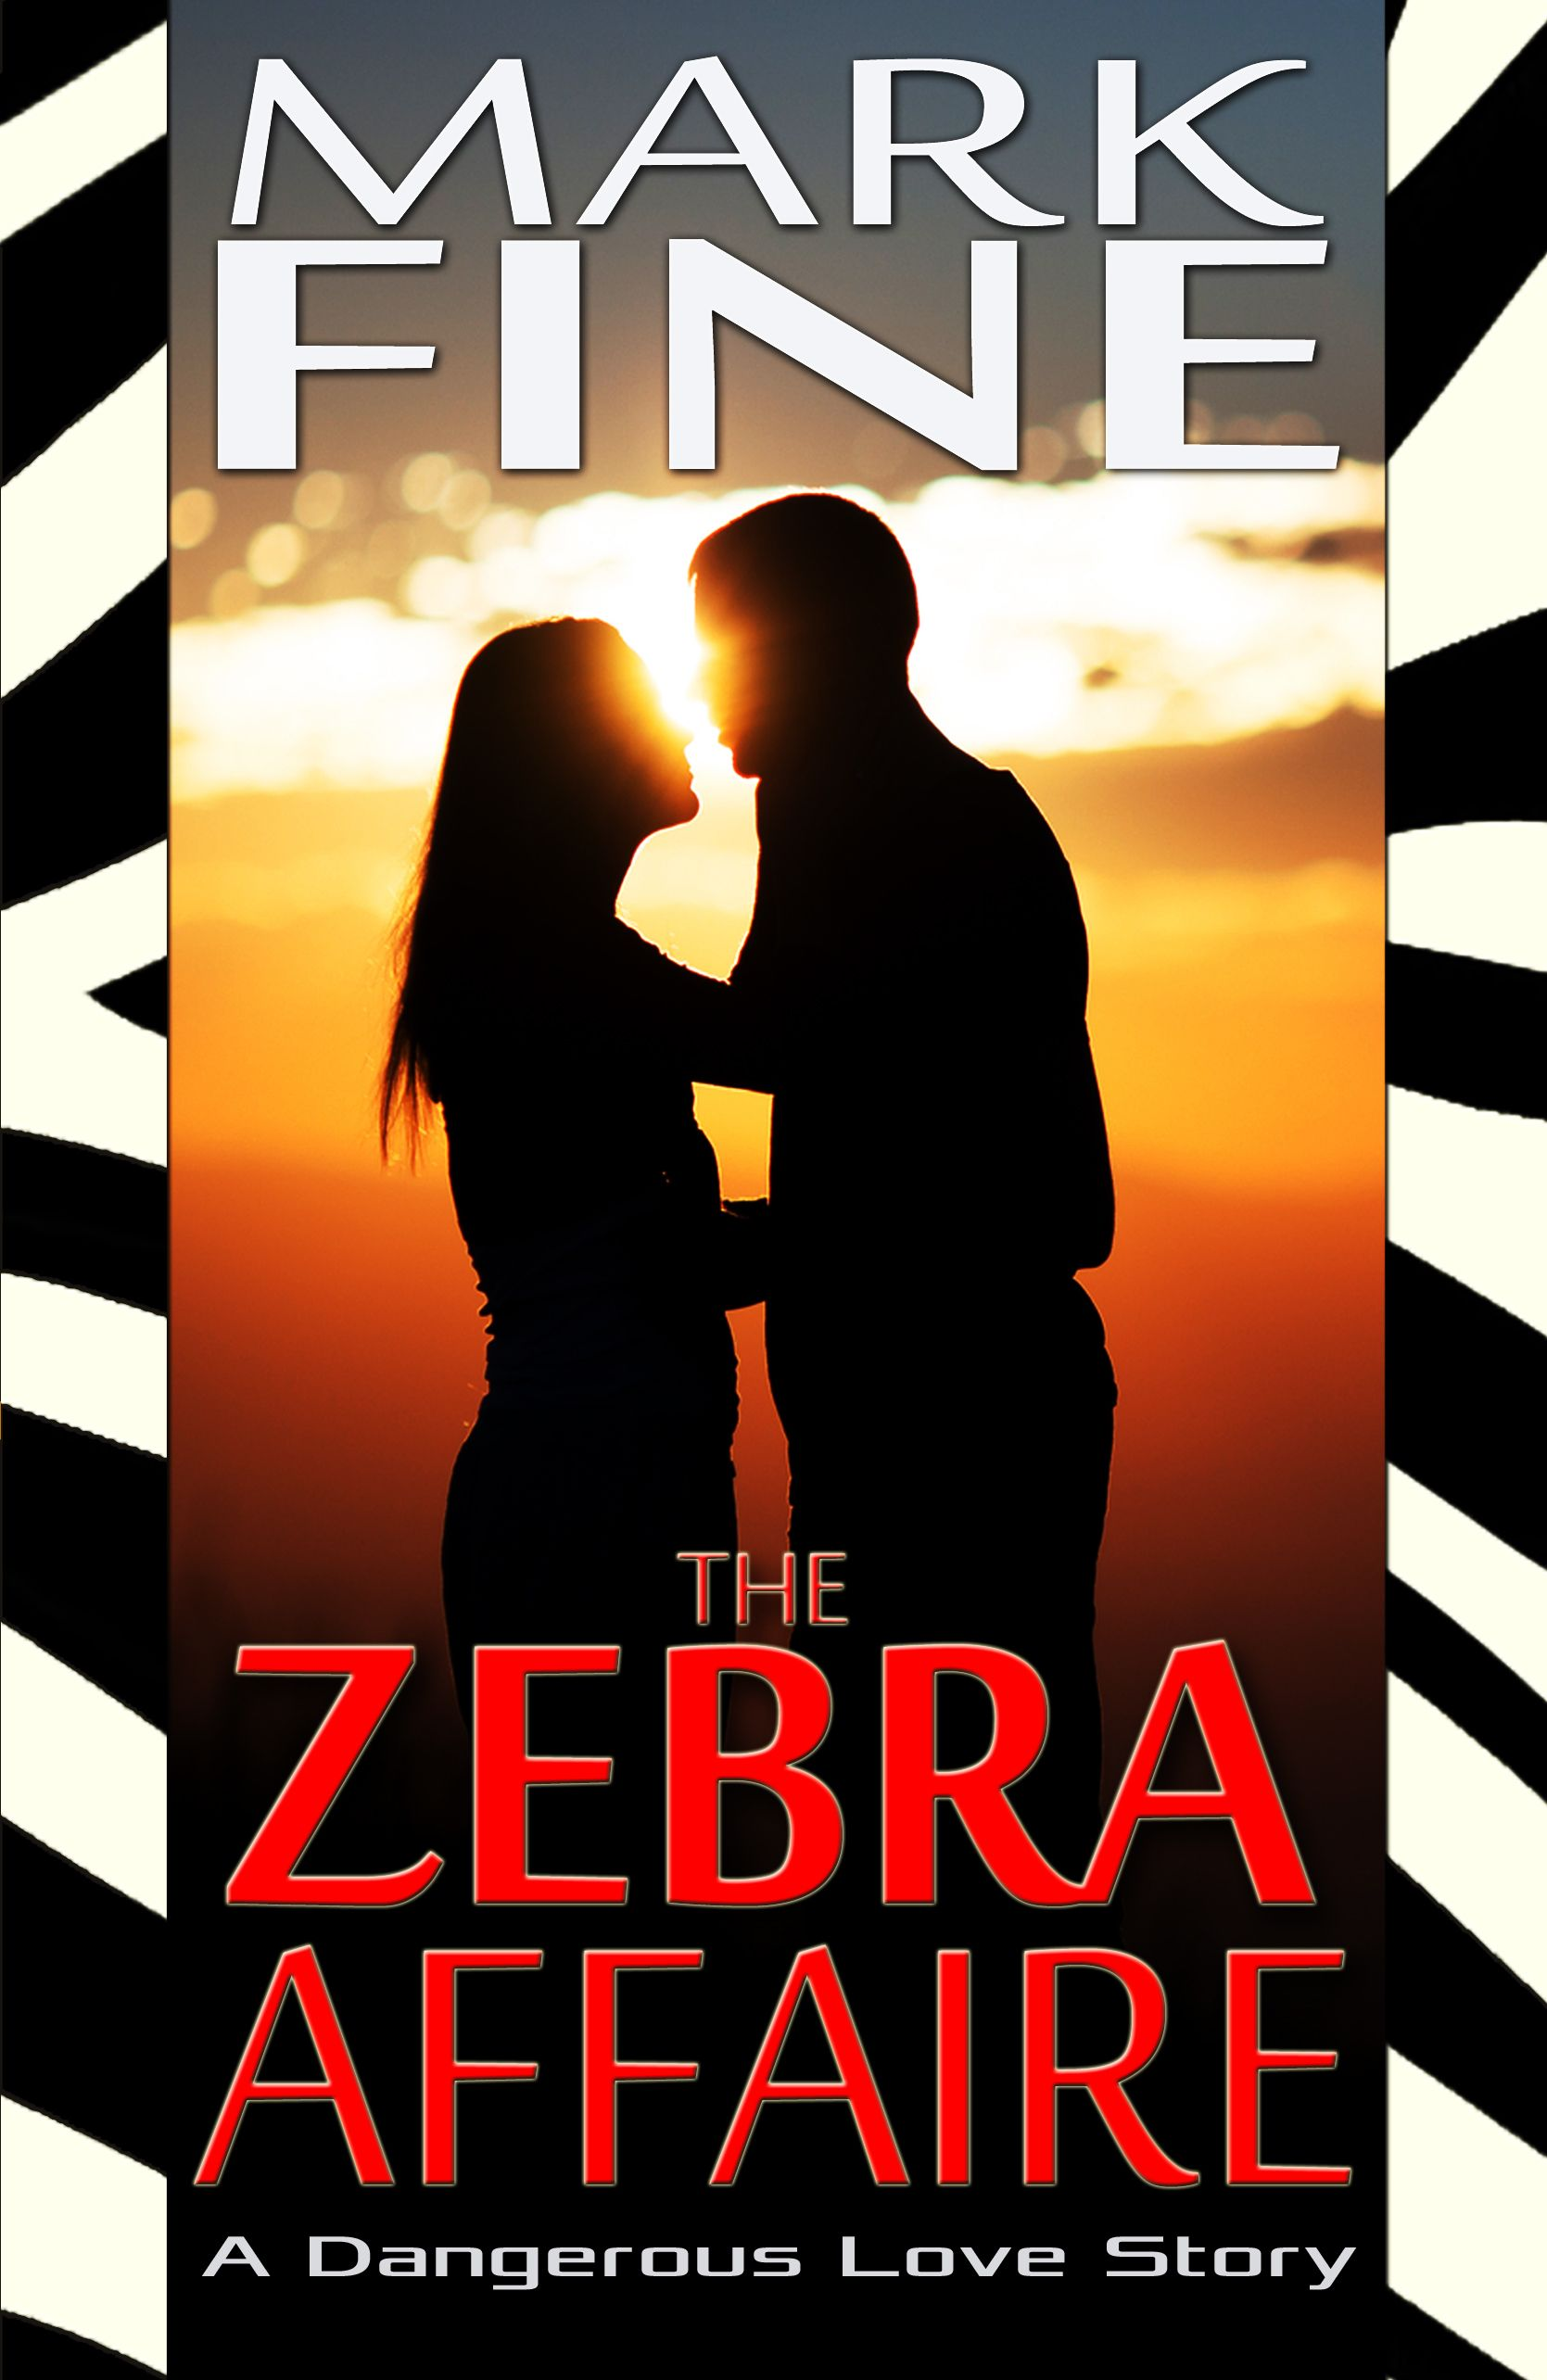 The process of designing a more romantic cover for THE ZEBRA AFFAIRE took several itterations. This is #1.